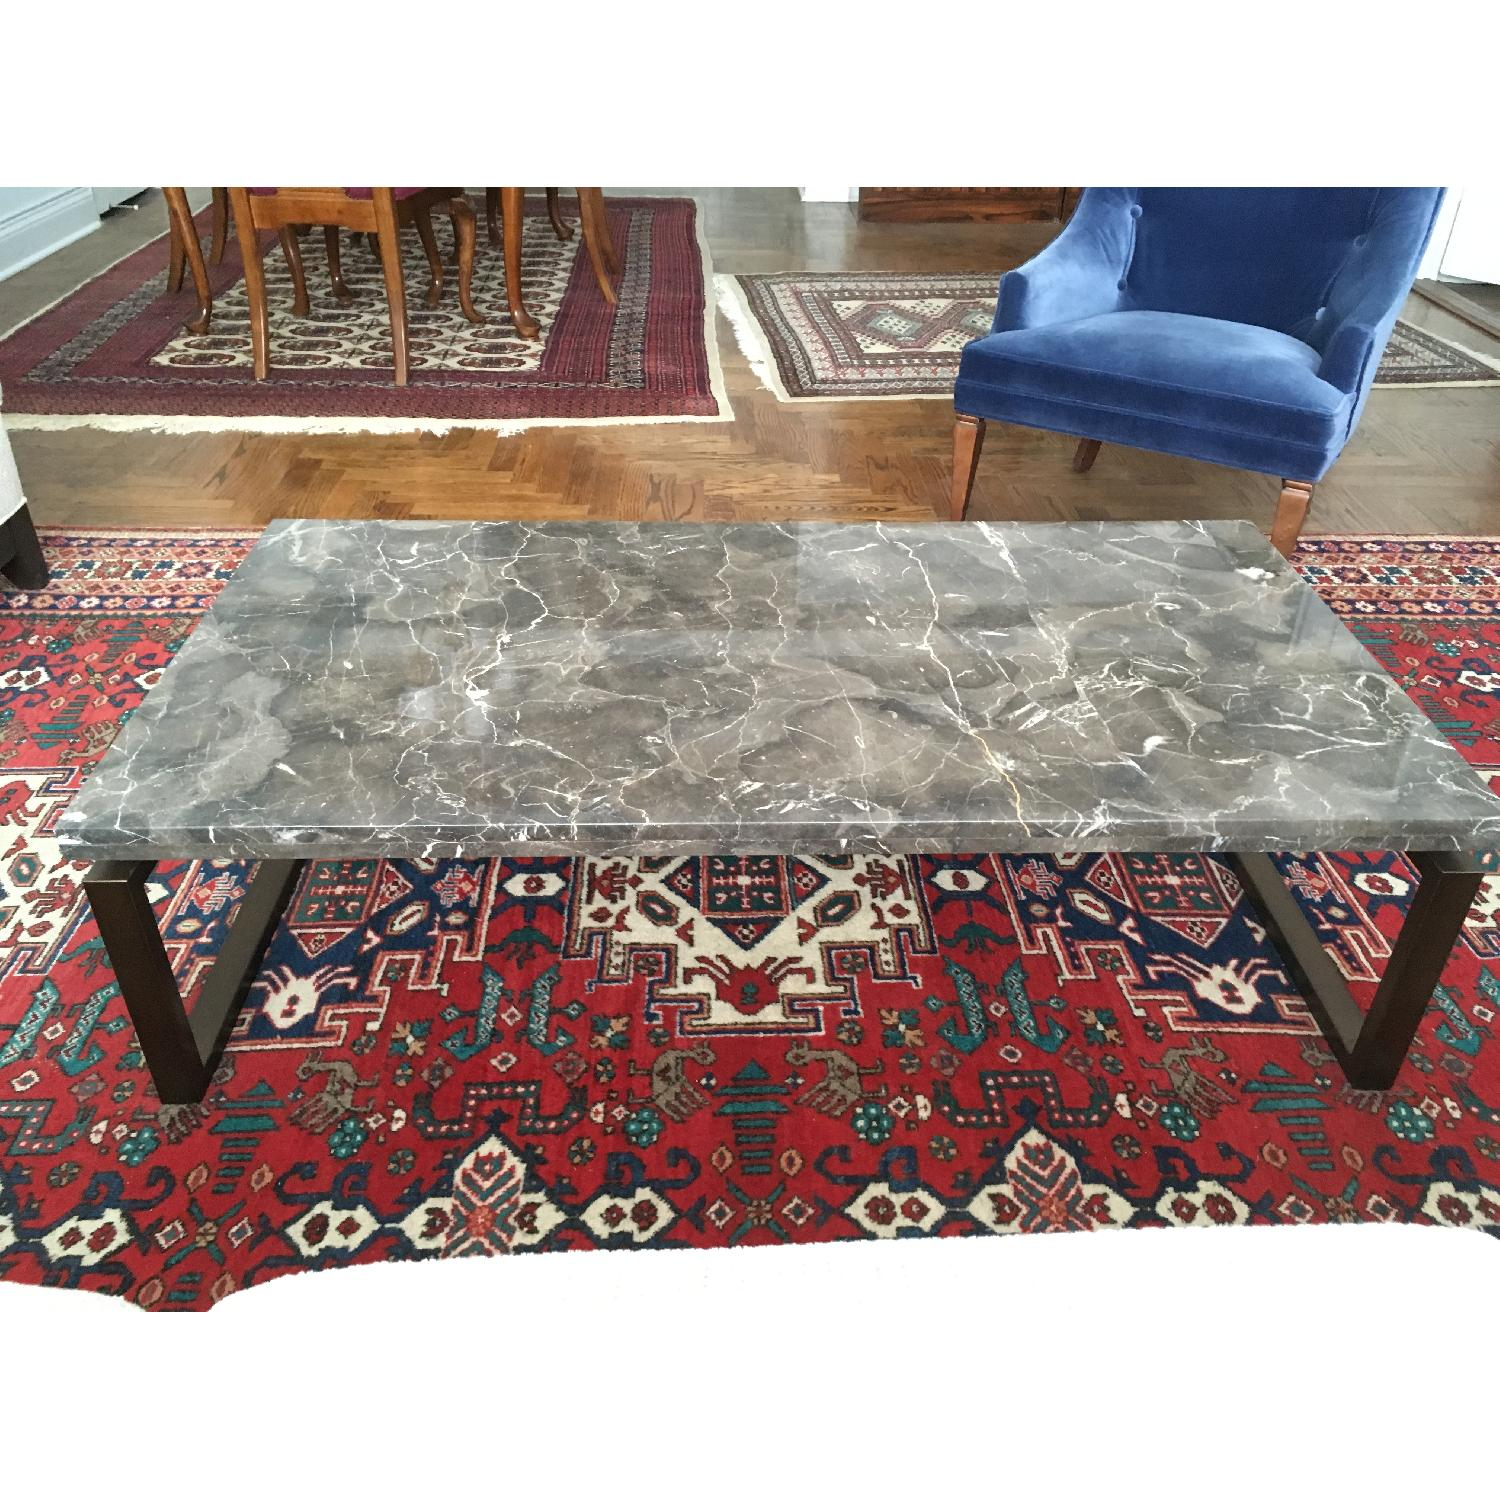 Safavieh Marble Top Cocktail Table - image-1